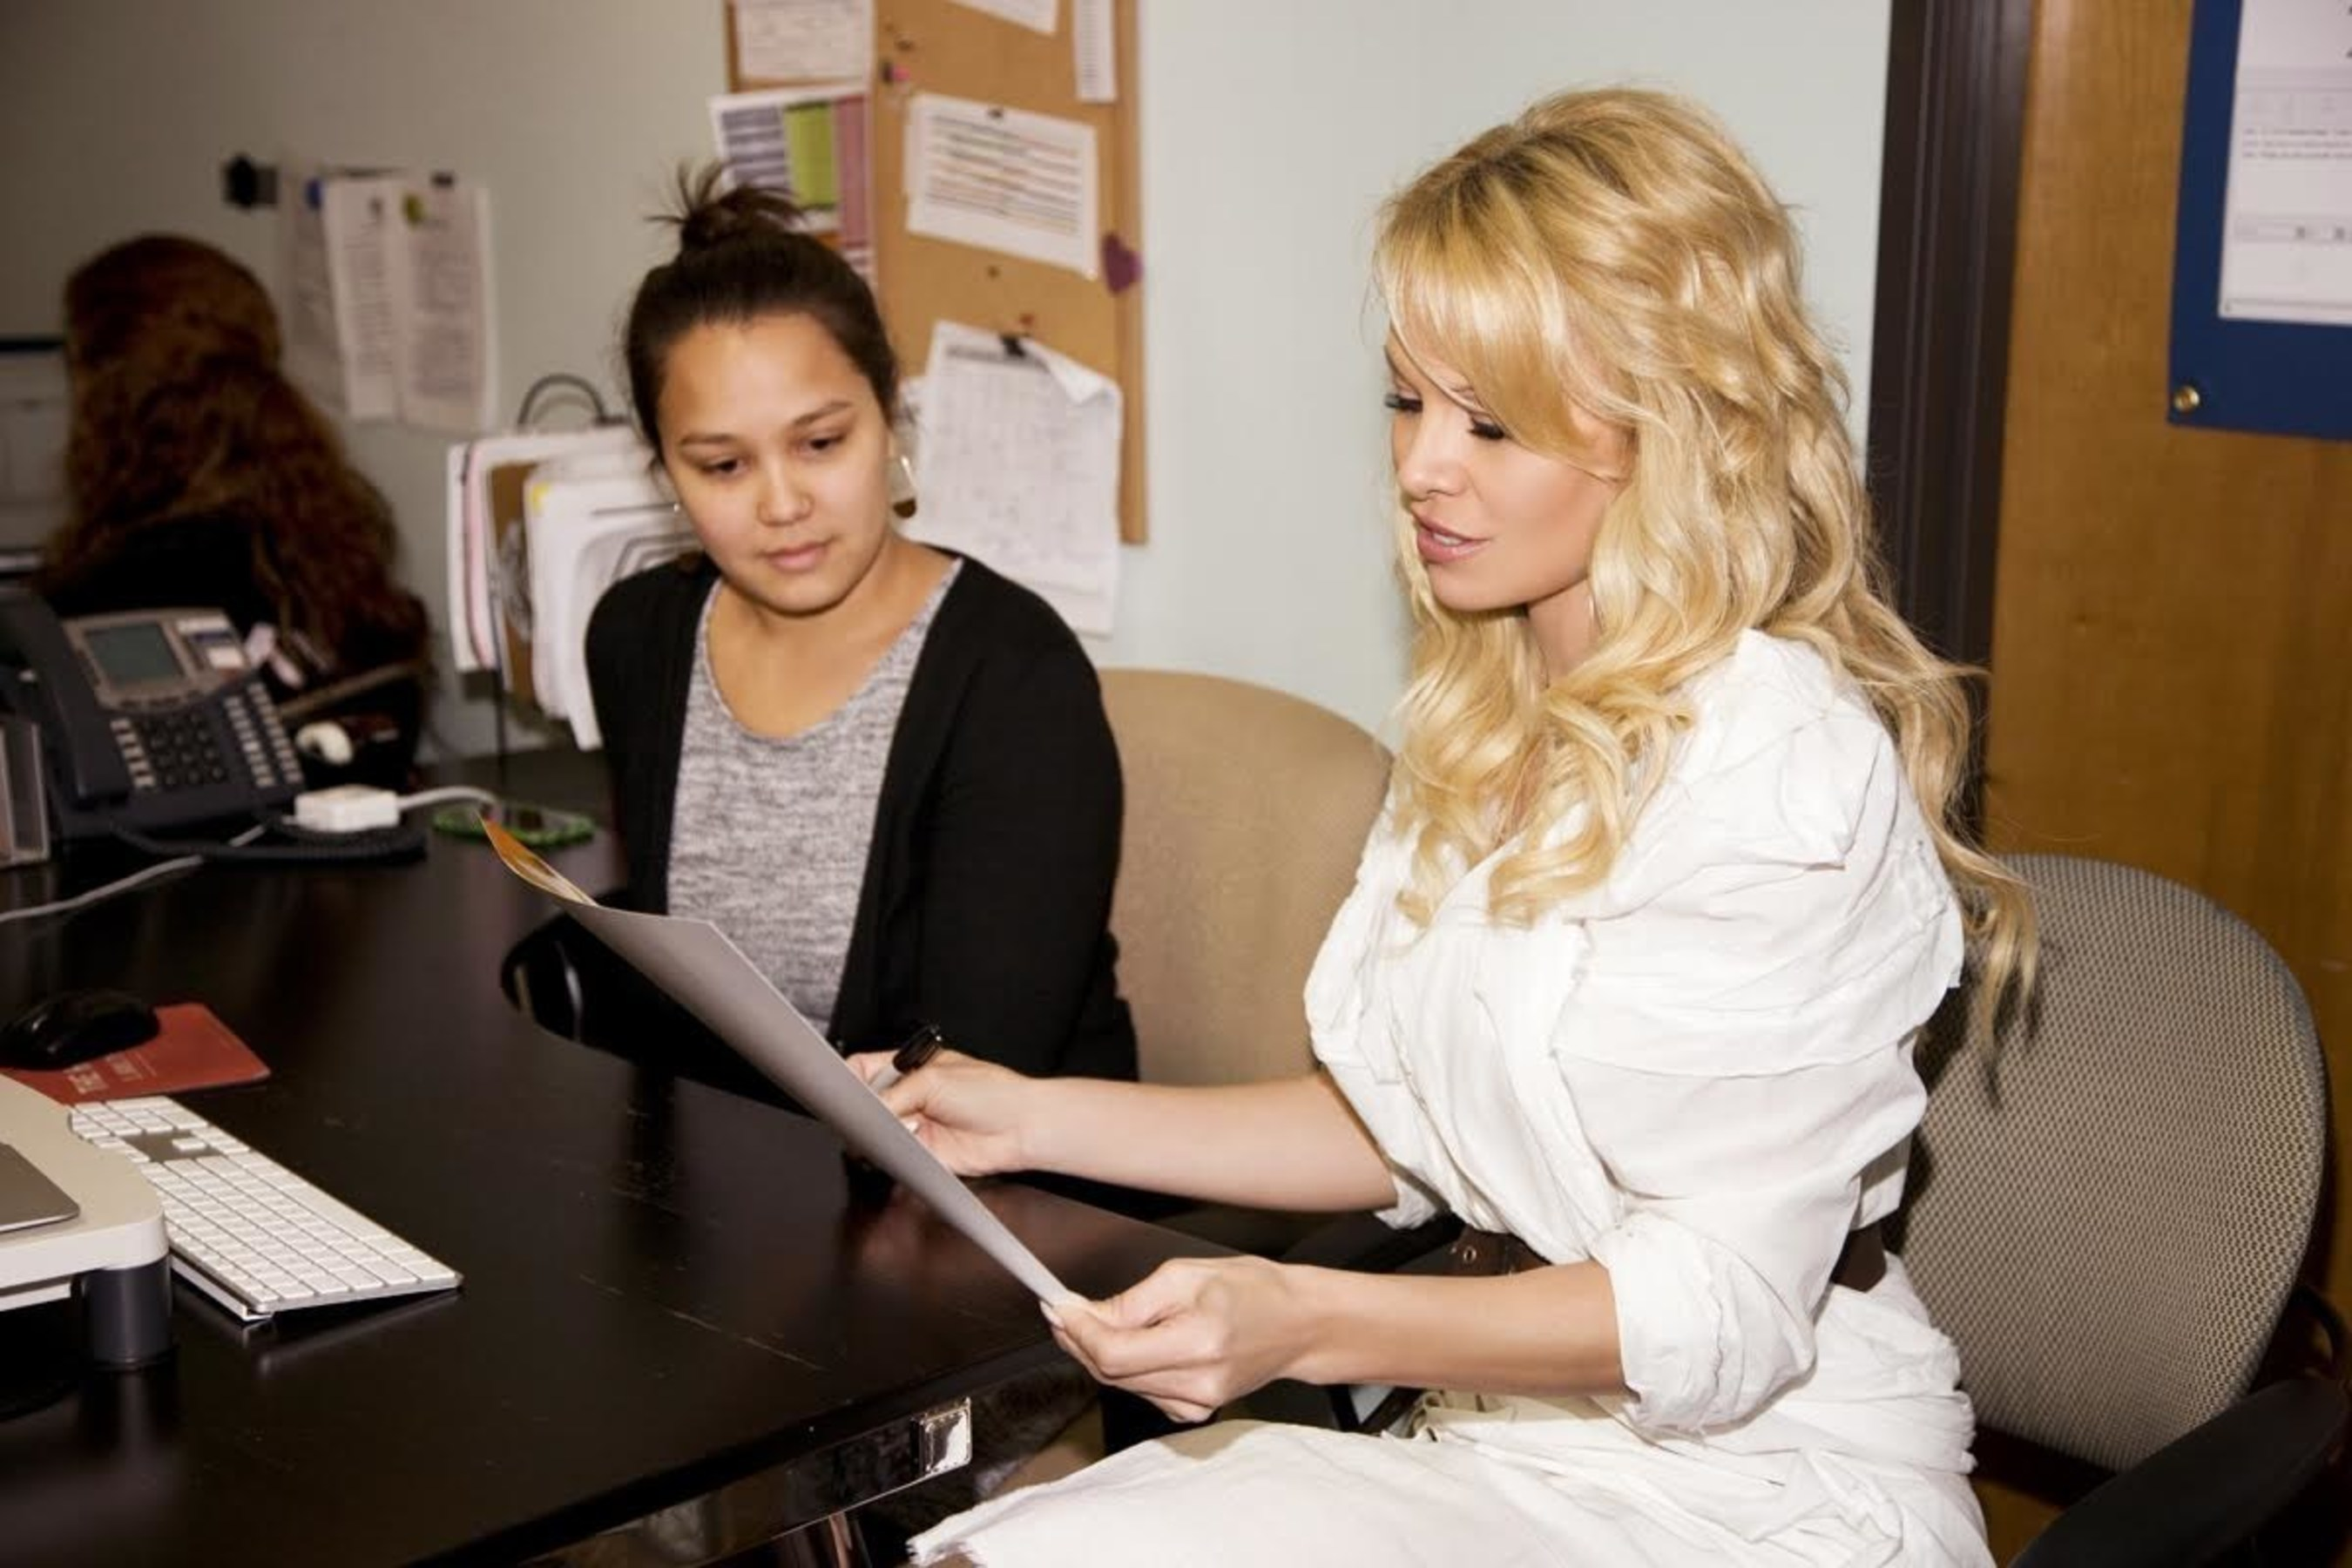 Pamela Anderson Donates $50,000 to The National Domestic Violence Hotline